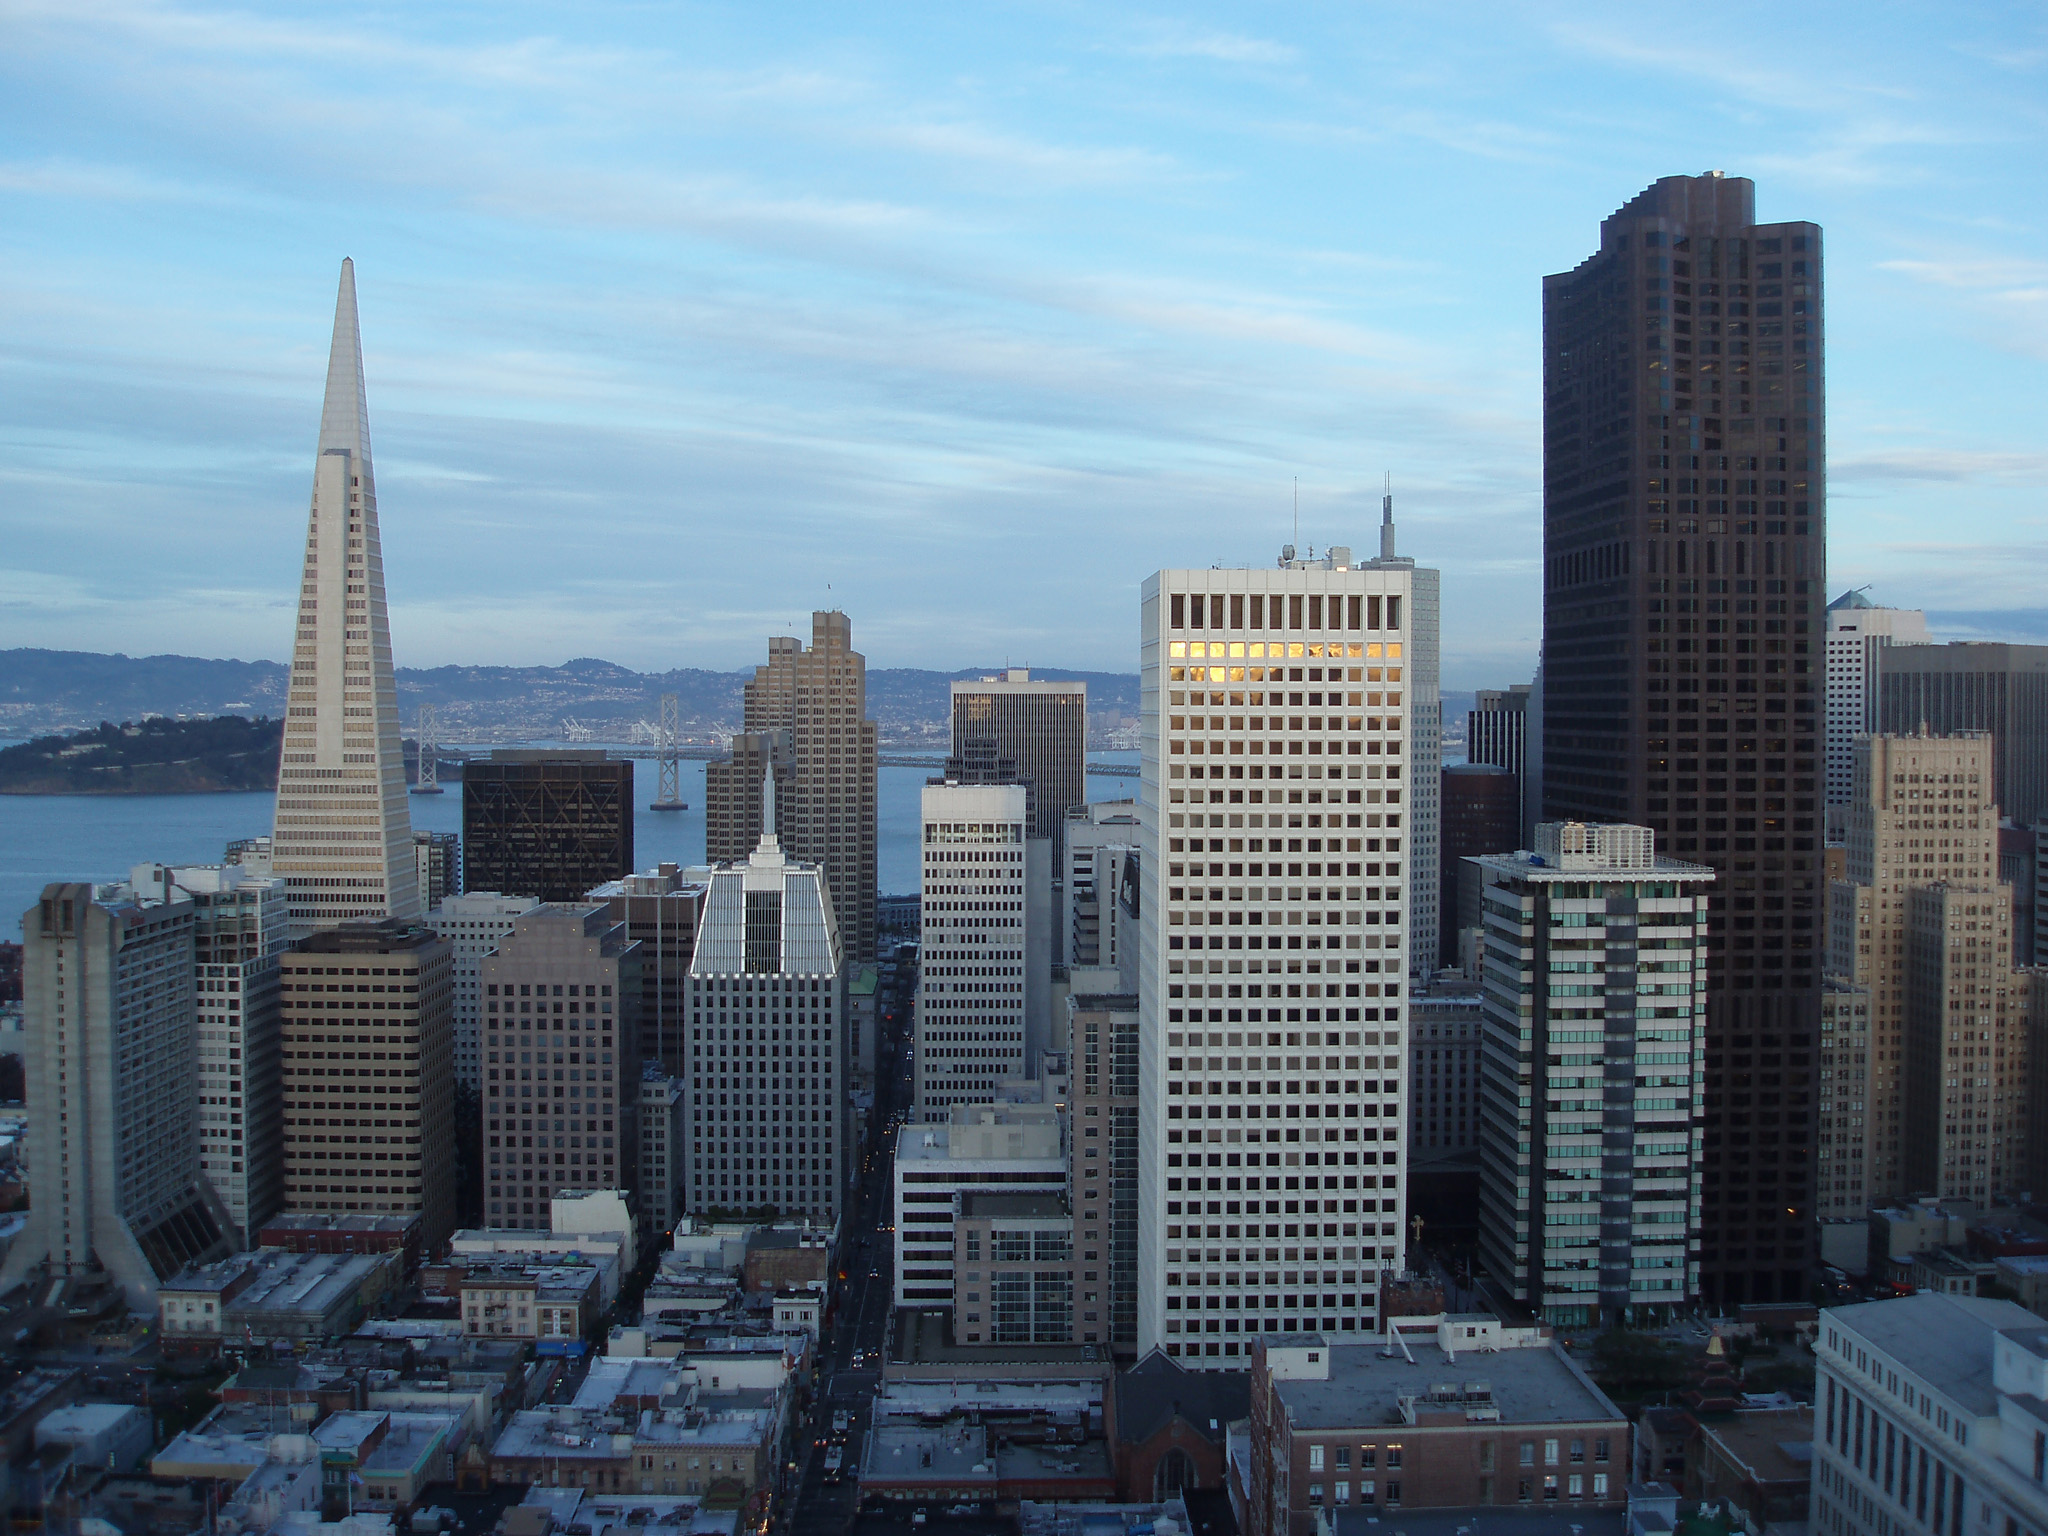 San Francisco hits Record high in Tourism